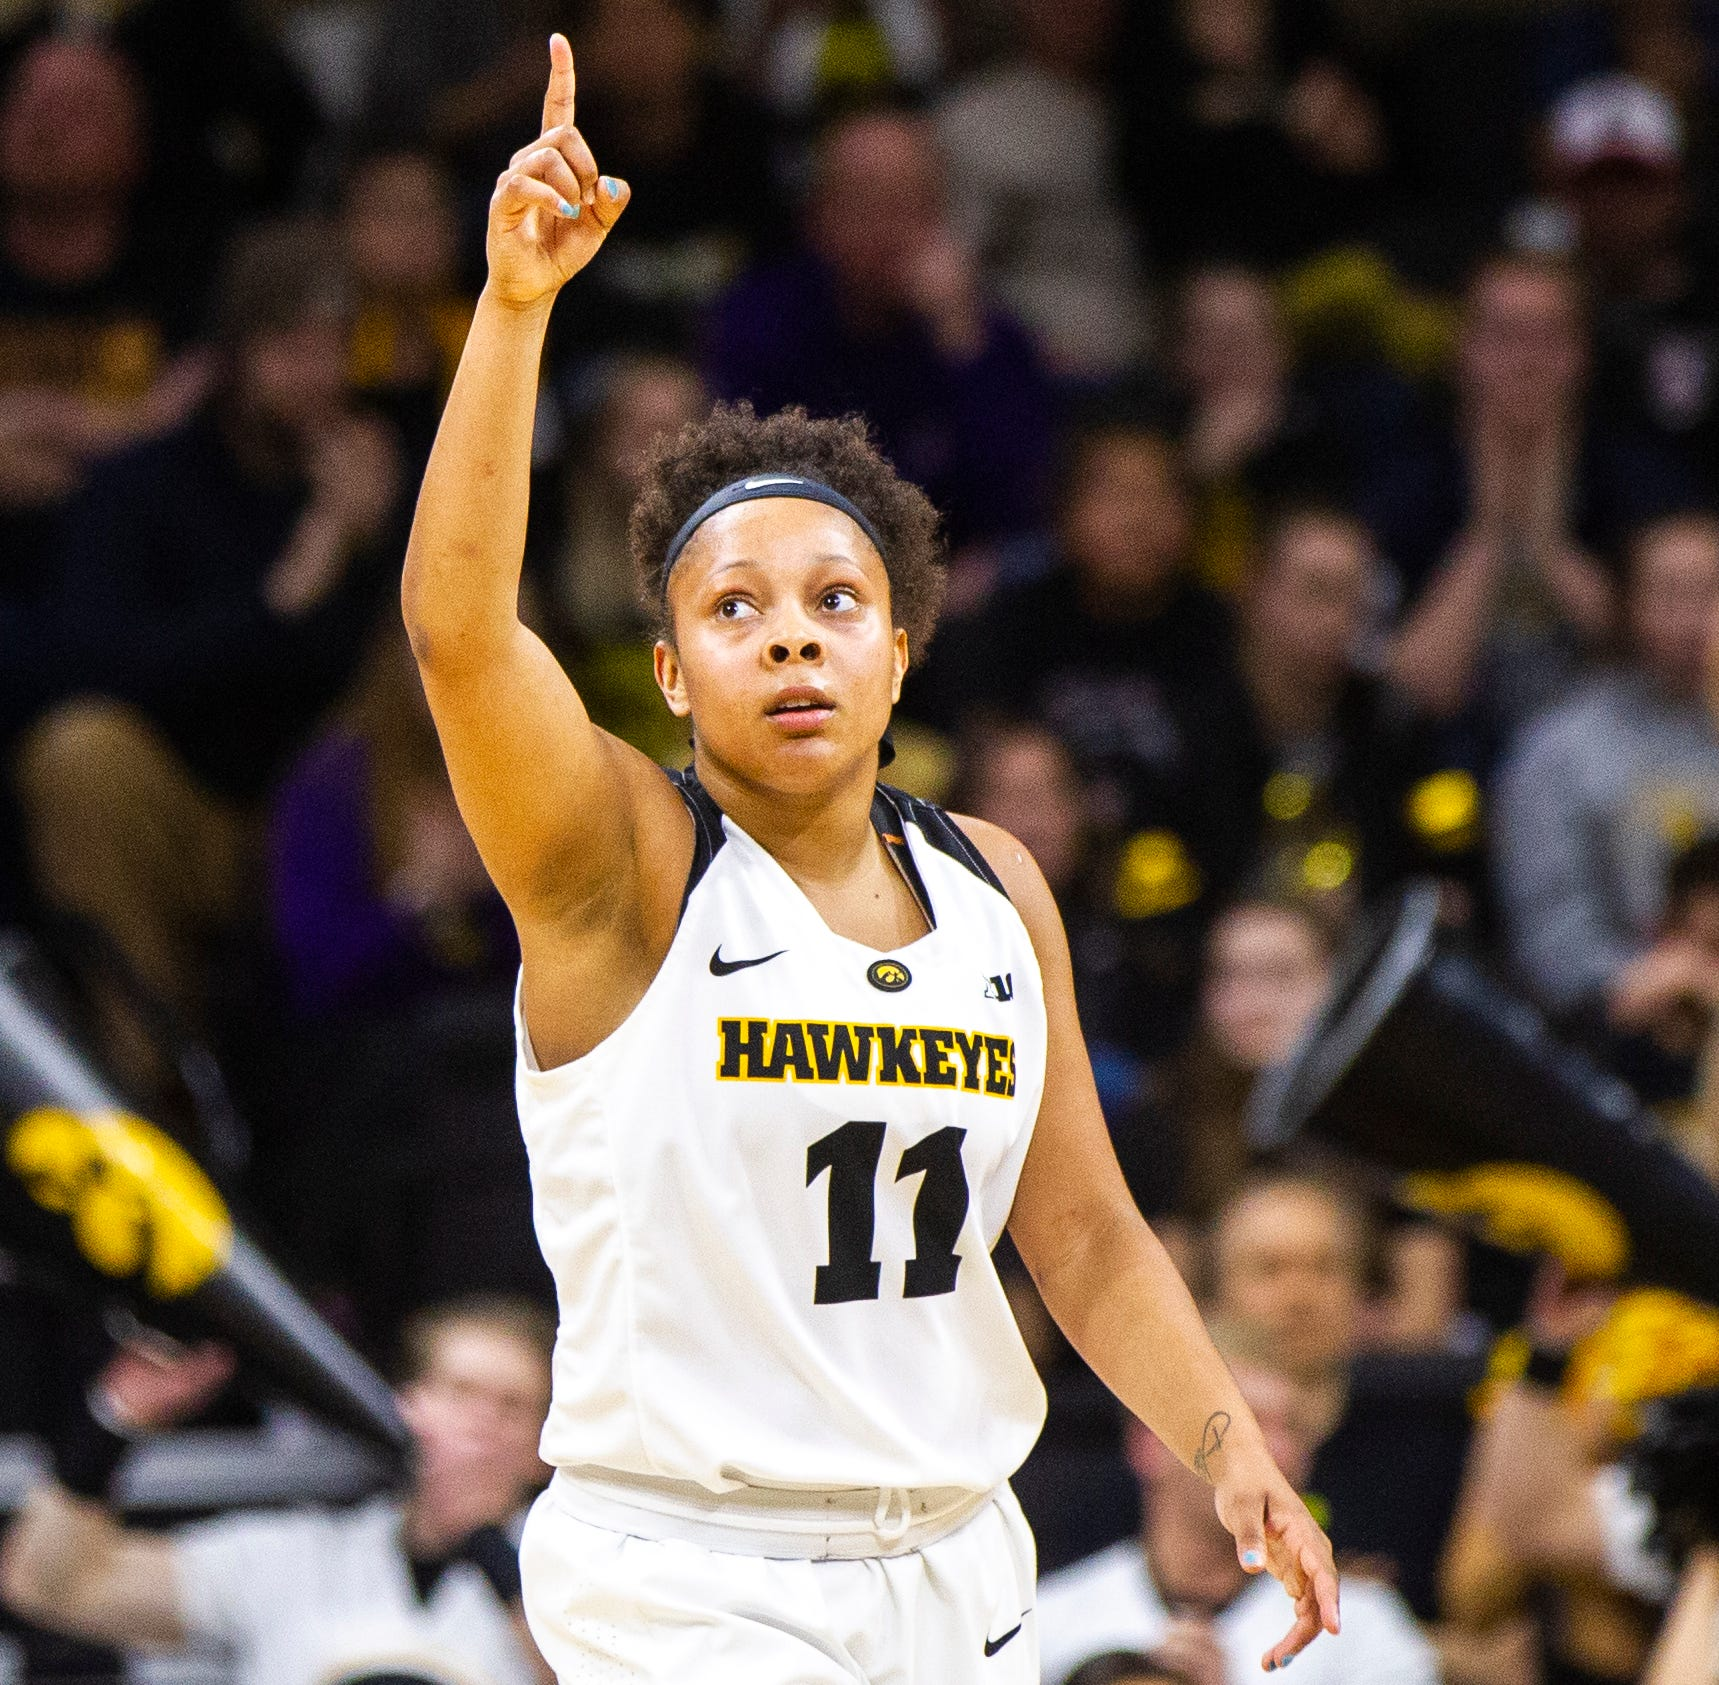 Iowa women's basketball: Dictating pace crucial as Hawkeyes host Rutgers in ranked showdown